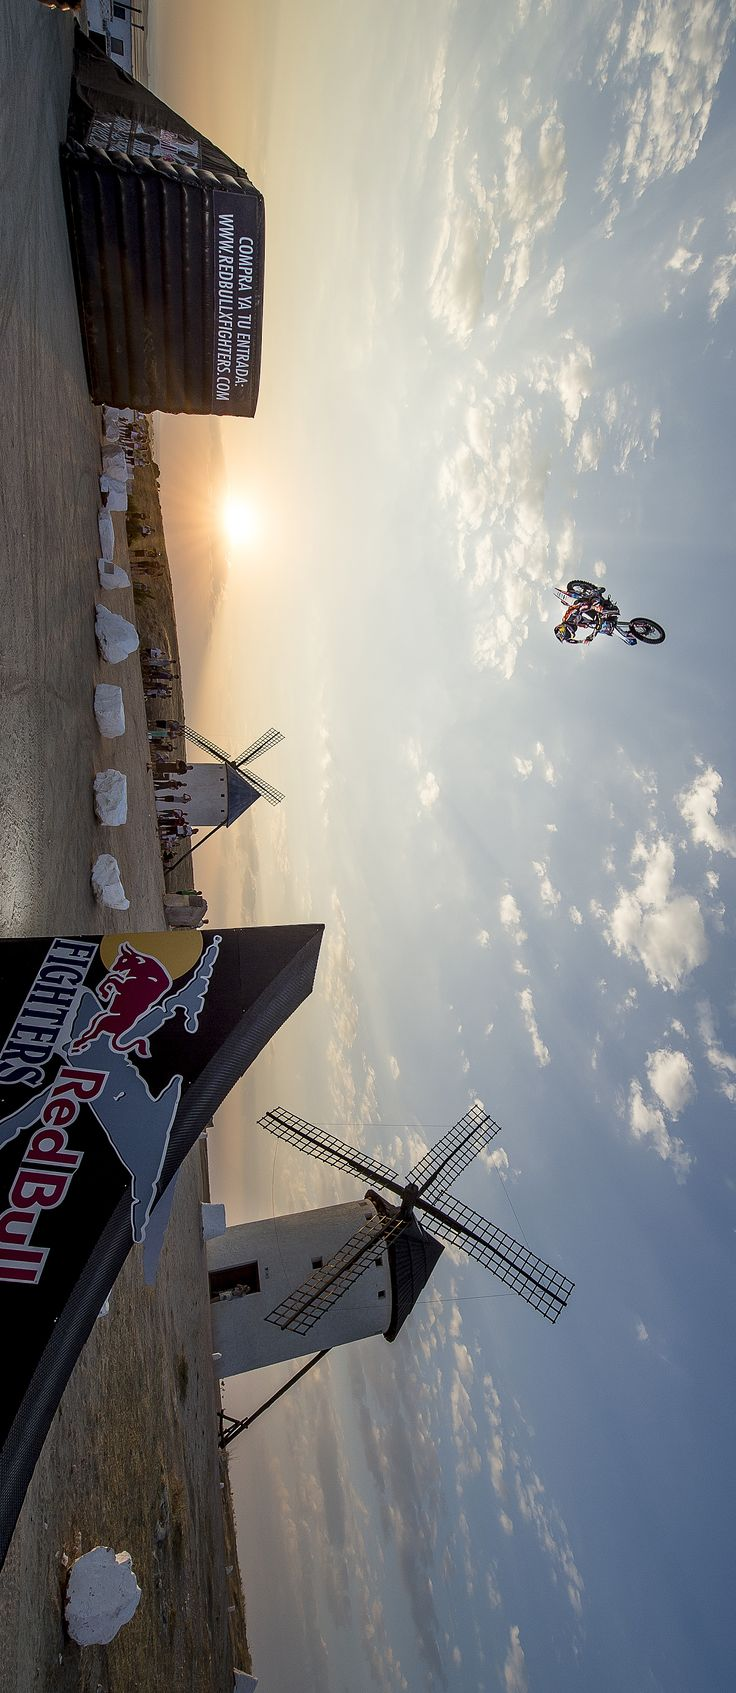 Welcome to the weekend. #redbull #xfighters